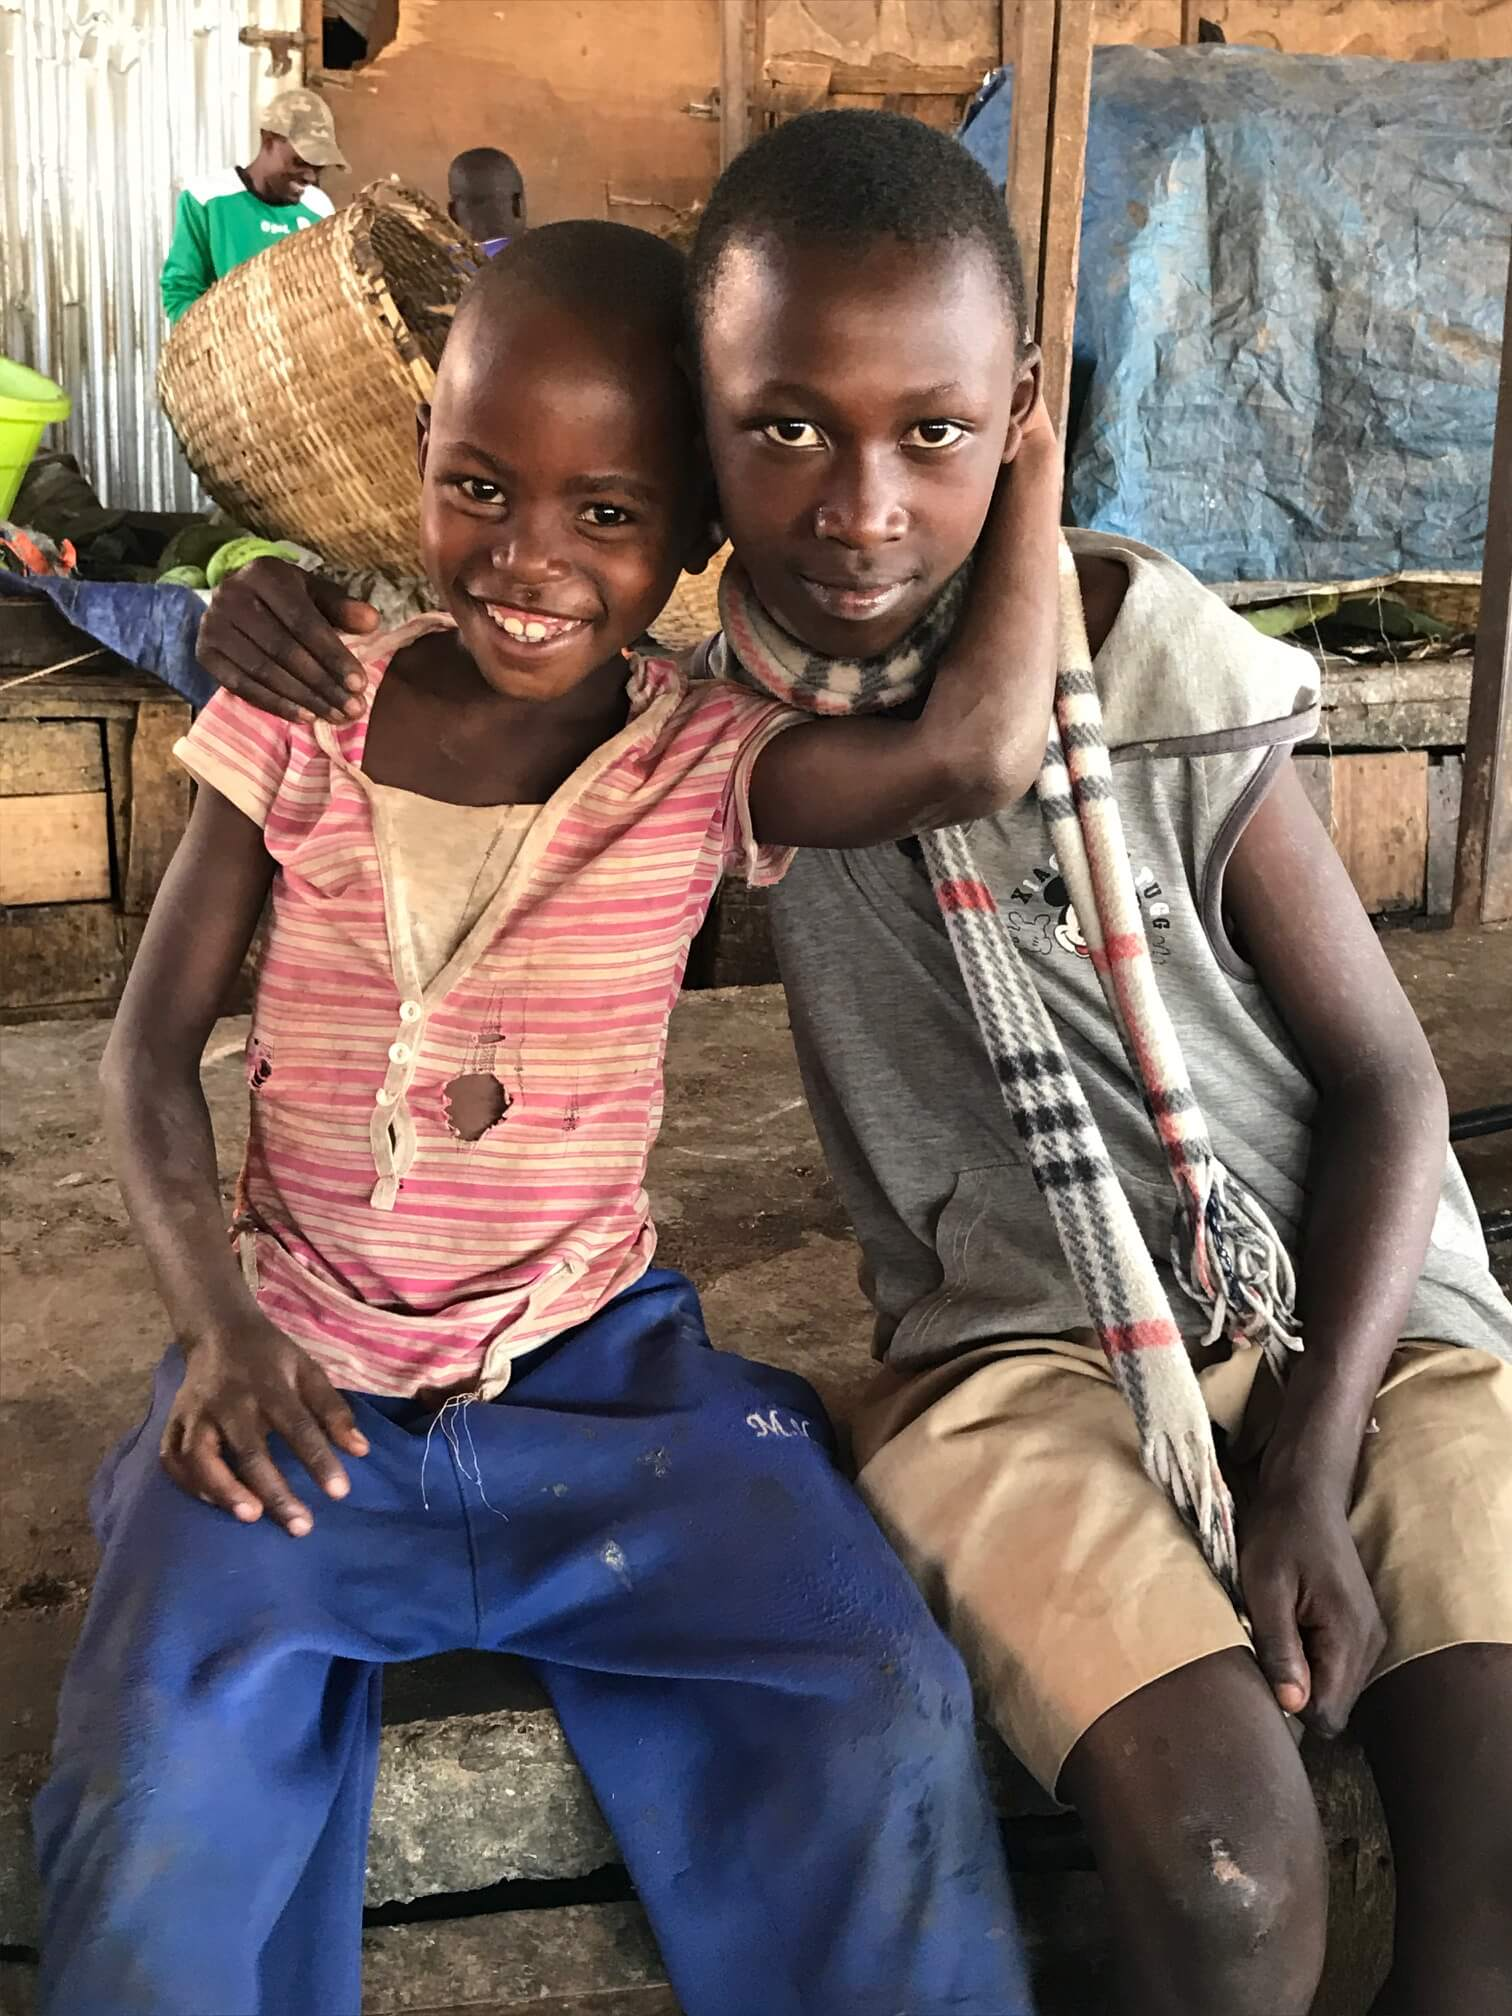 Two smiling Rwandan kids